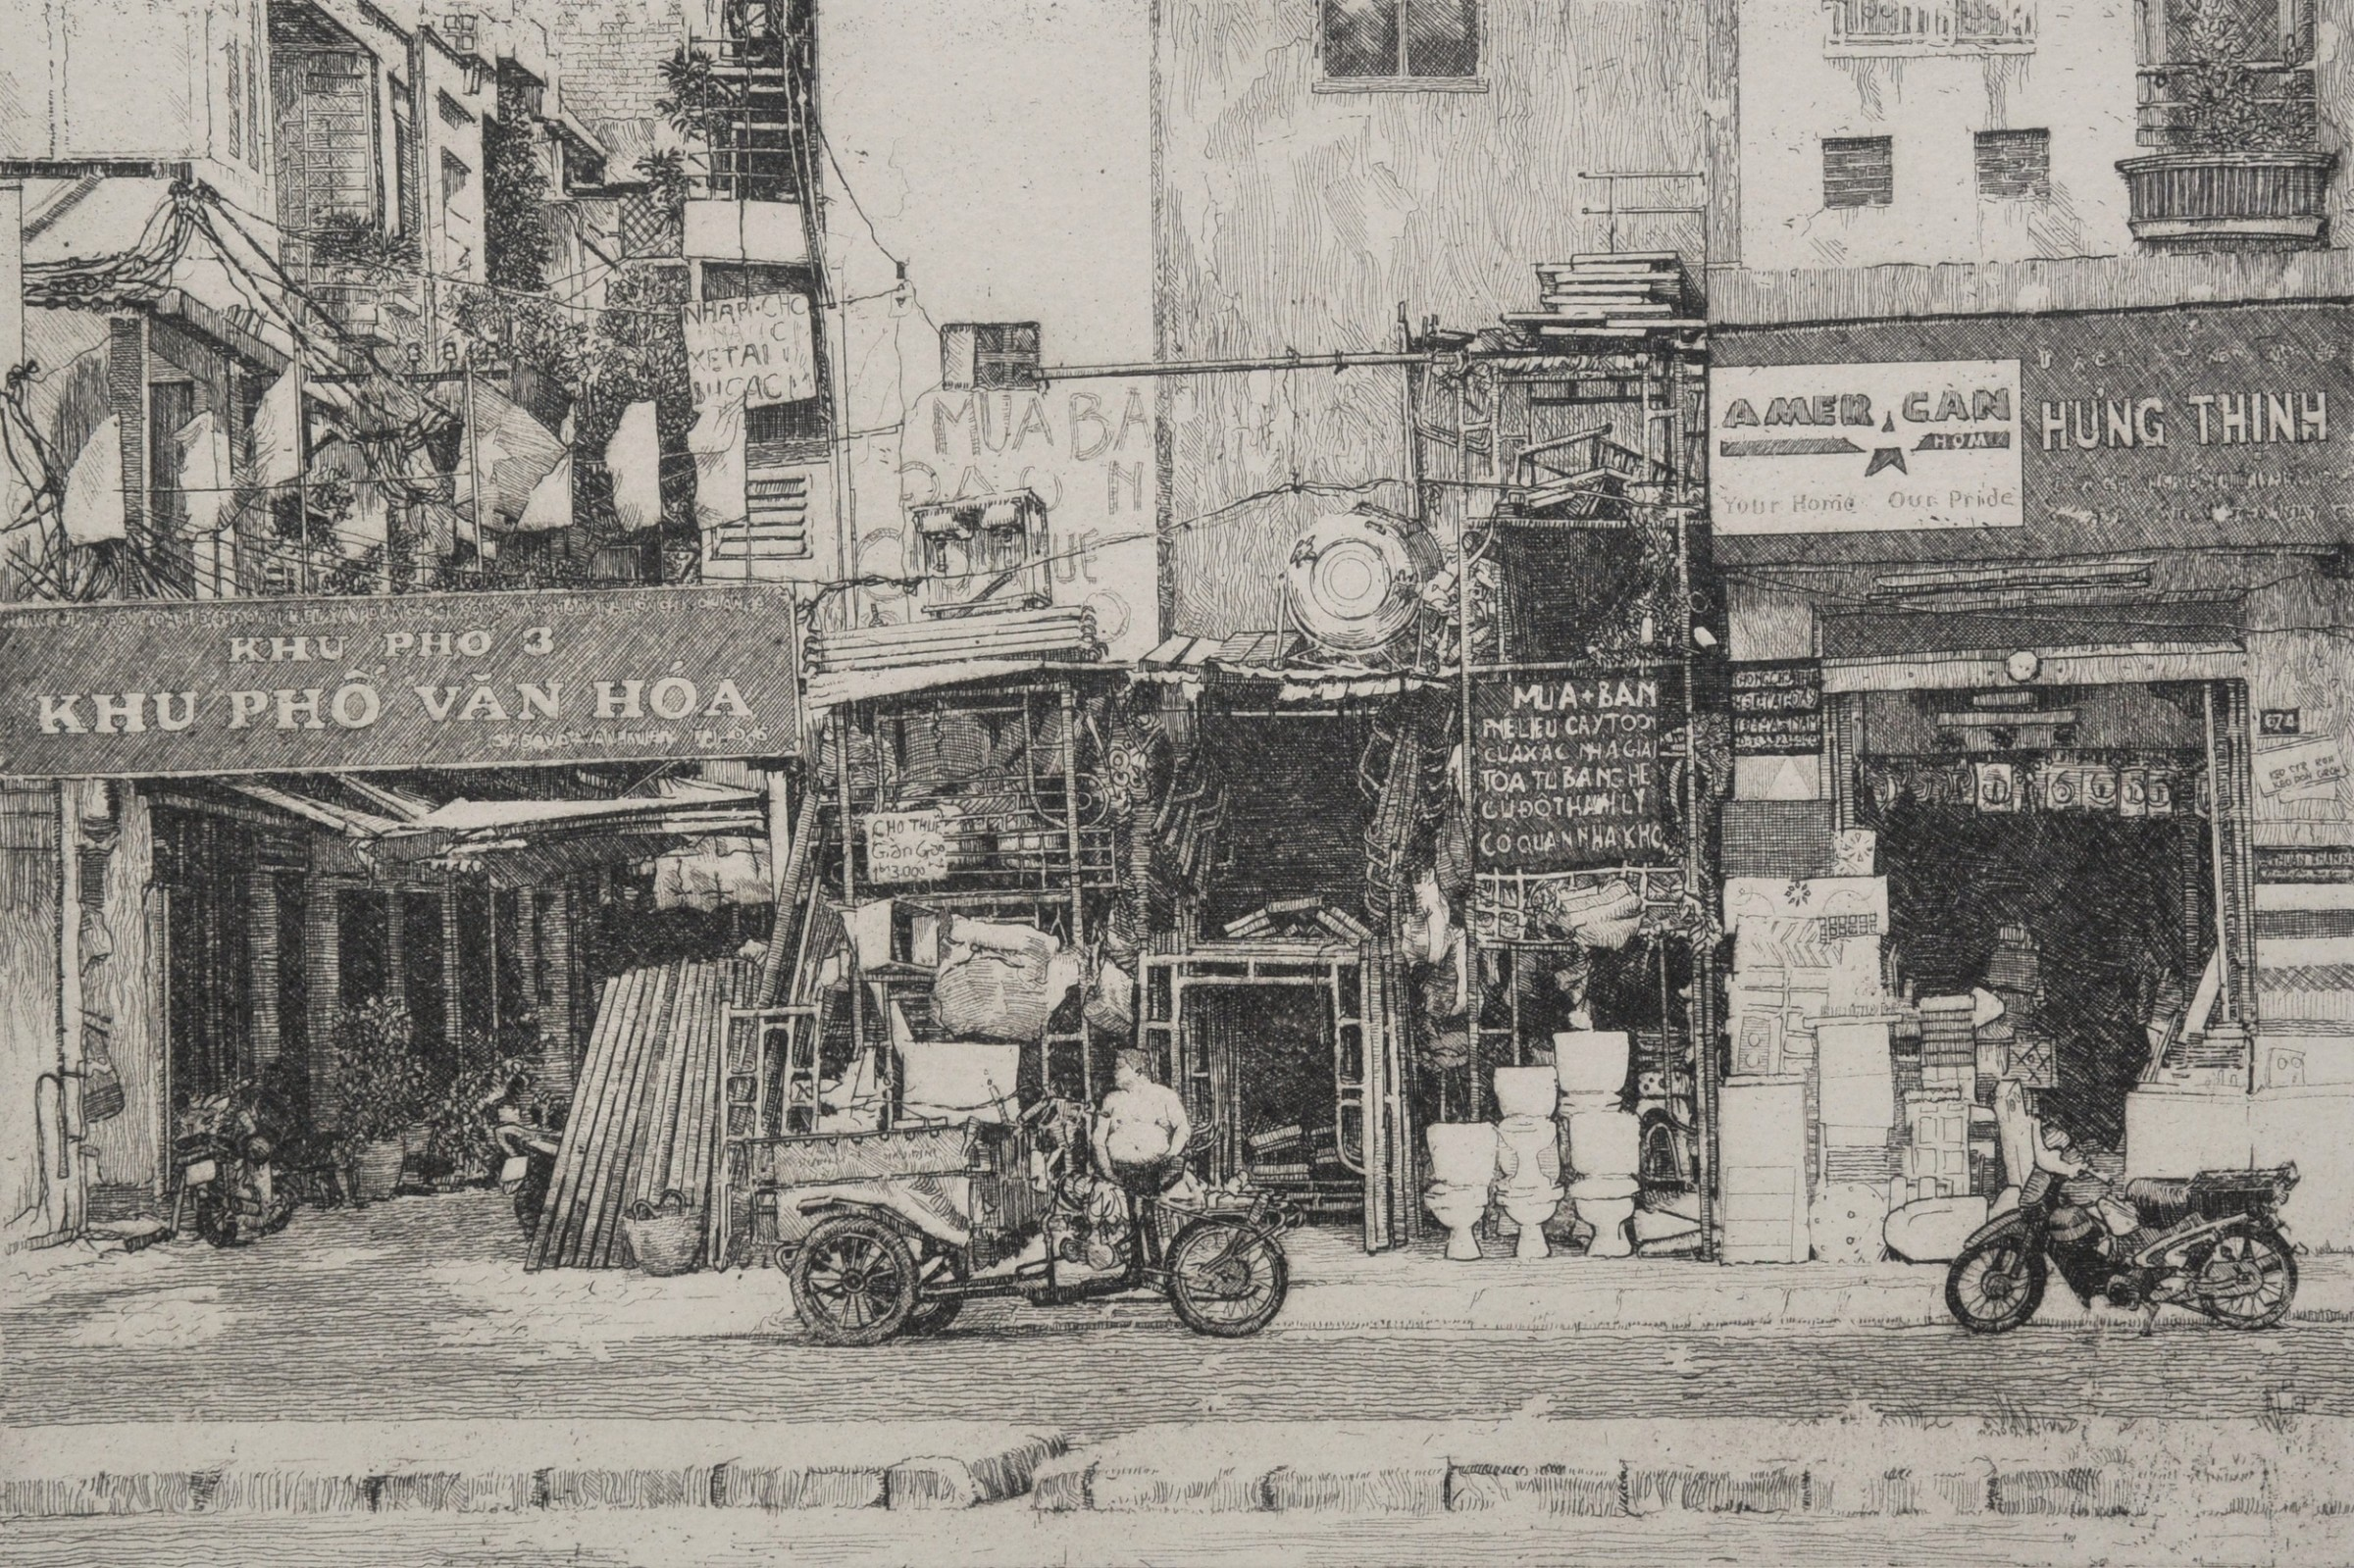 """<span class=""""link fancybox-details-link""""><a href=""""/exhibitions/17/works/image_standalone813/"""">View Detail Page</a></span><p><strong>Will Taylor</strong></p><p>Building Supplies Ho Chi Minh City</p><p>hardground etching, ed of 50</p><p>56 x 48cm</p><p>£400 framed</p><p>£300 unframed</p>"""